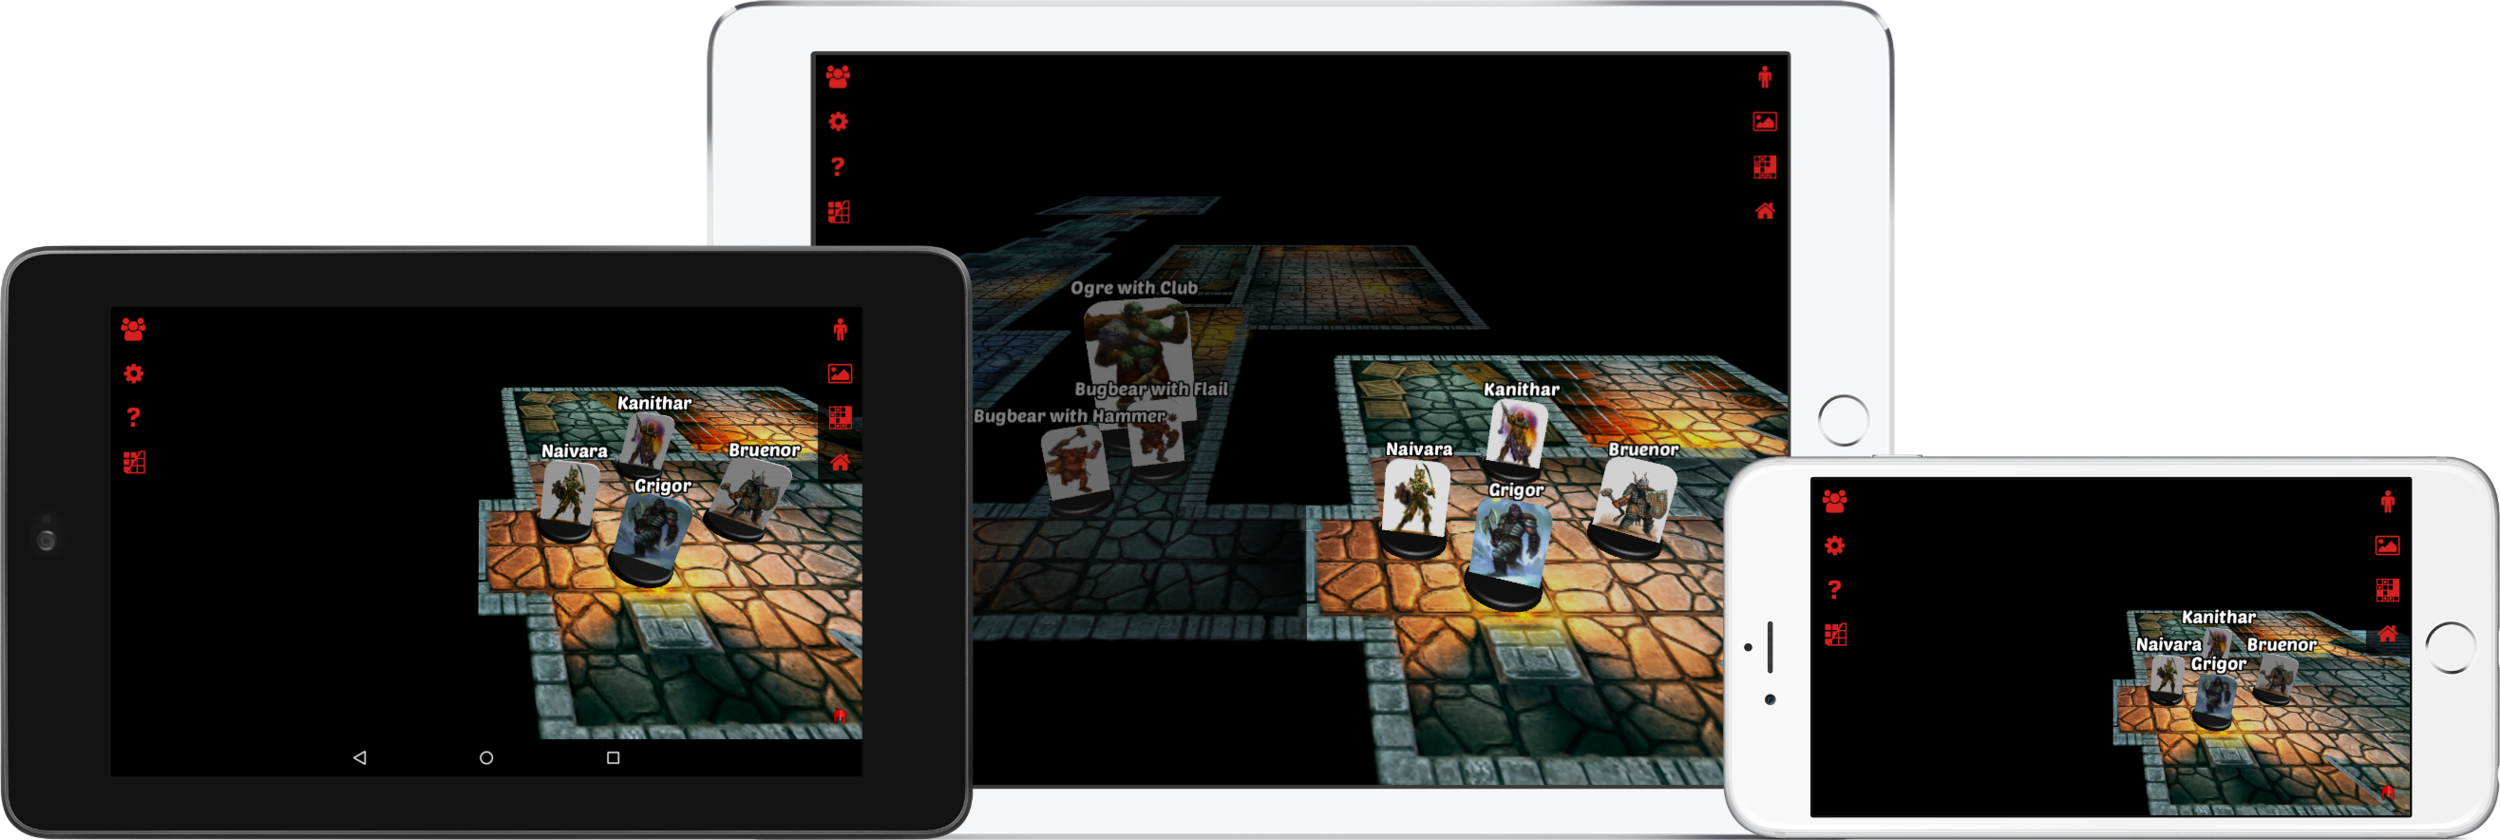 3d-virtual-tabletop-fog-of-war-on-iPad-iPhone-Android.png